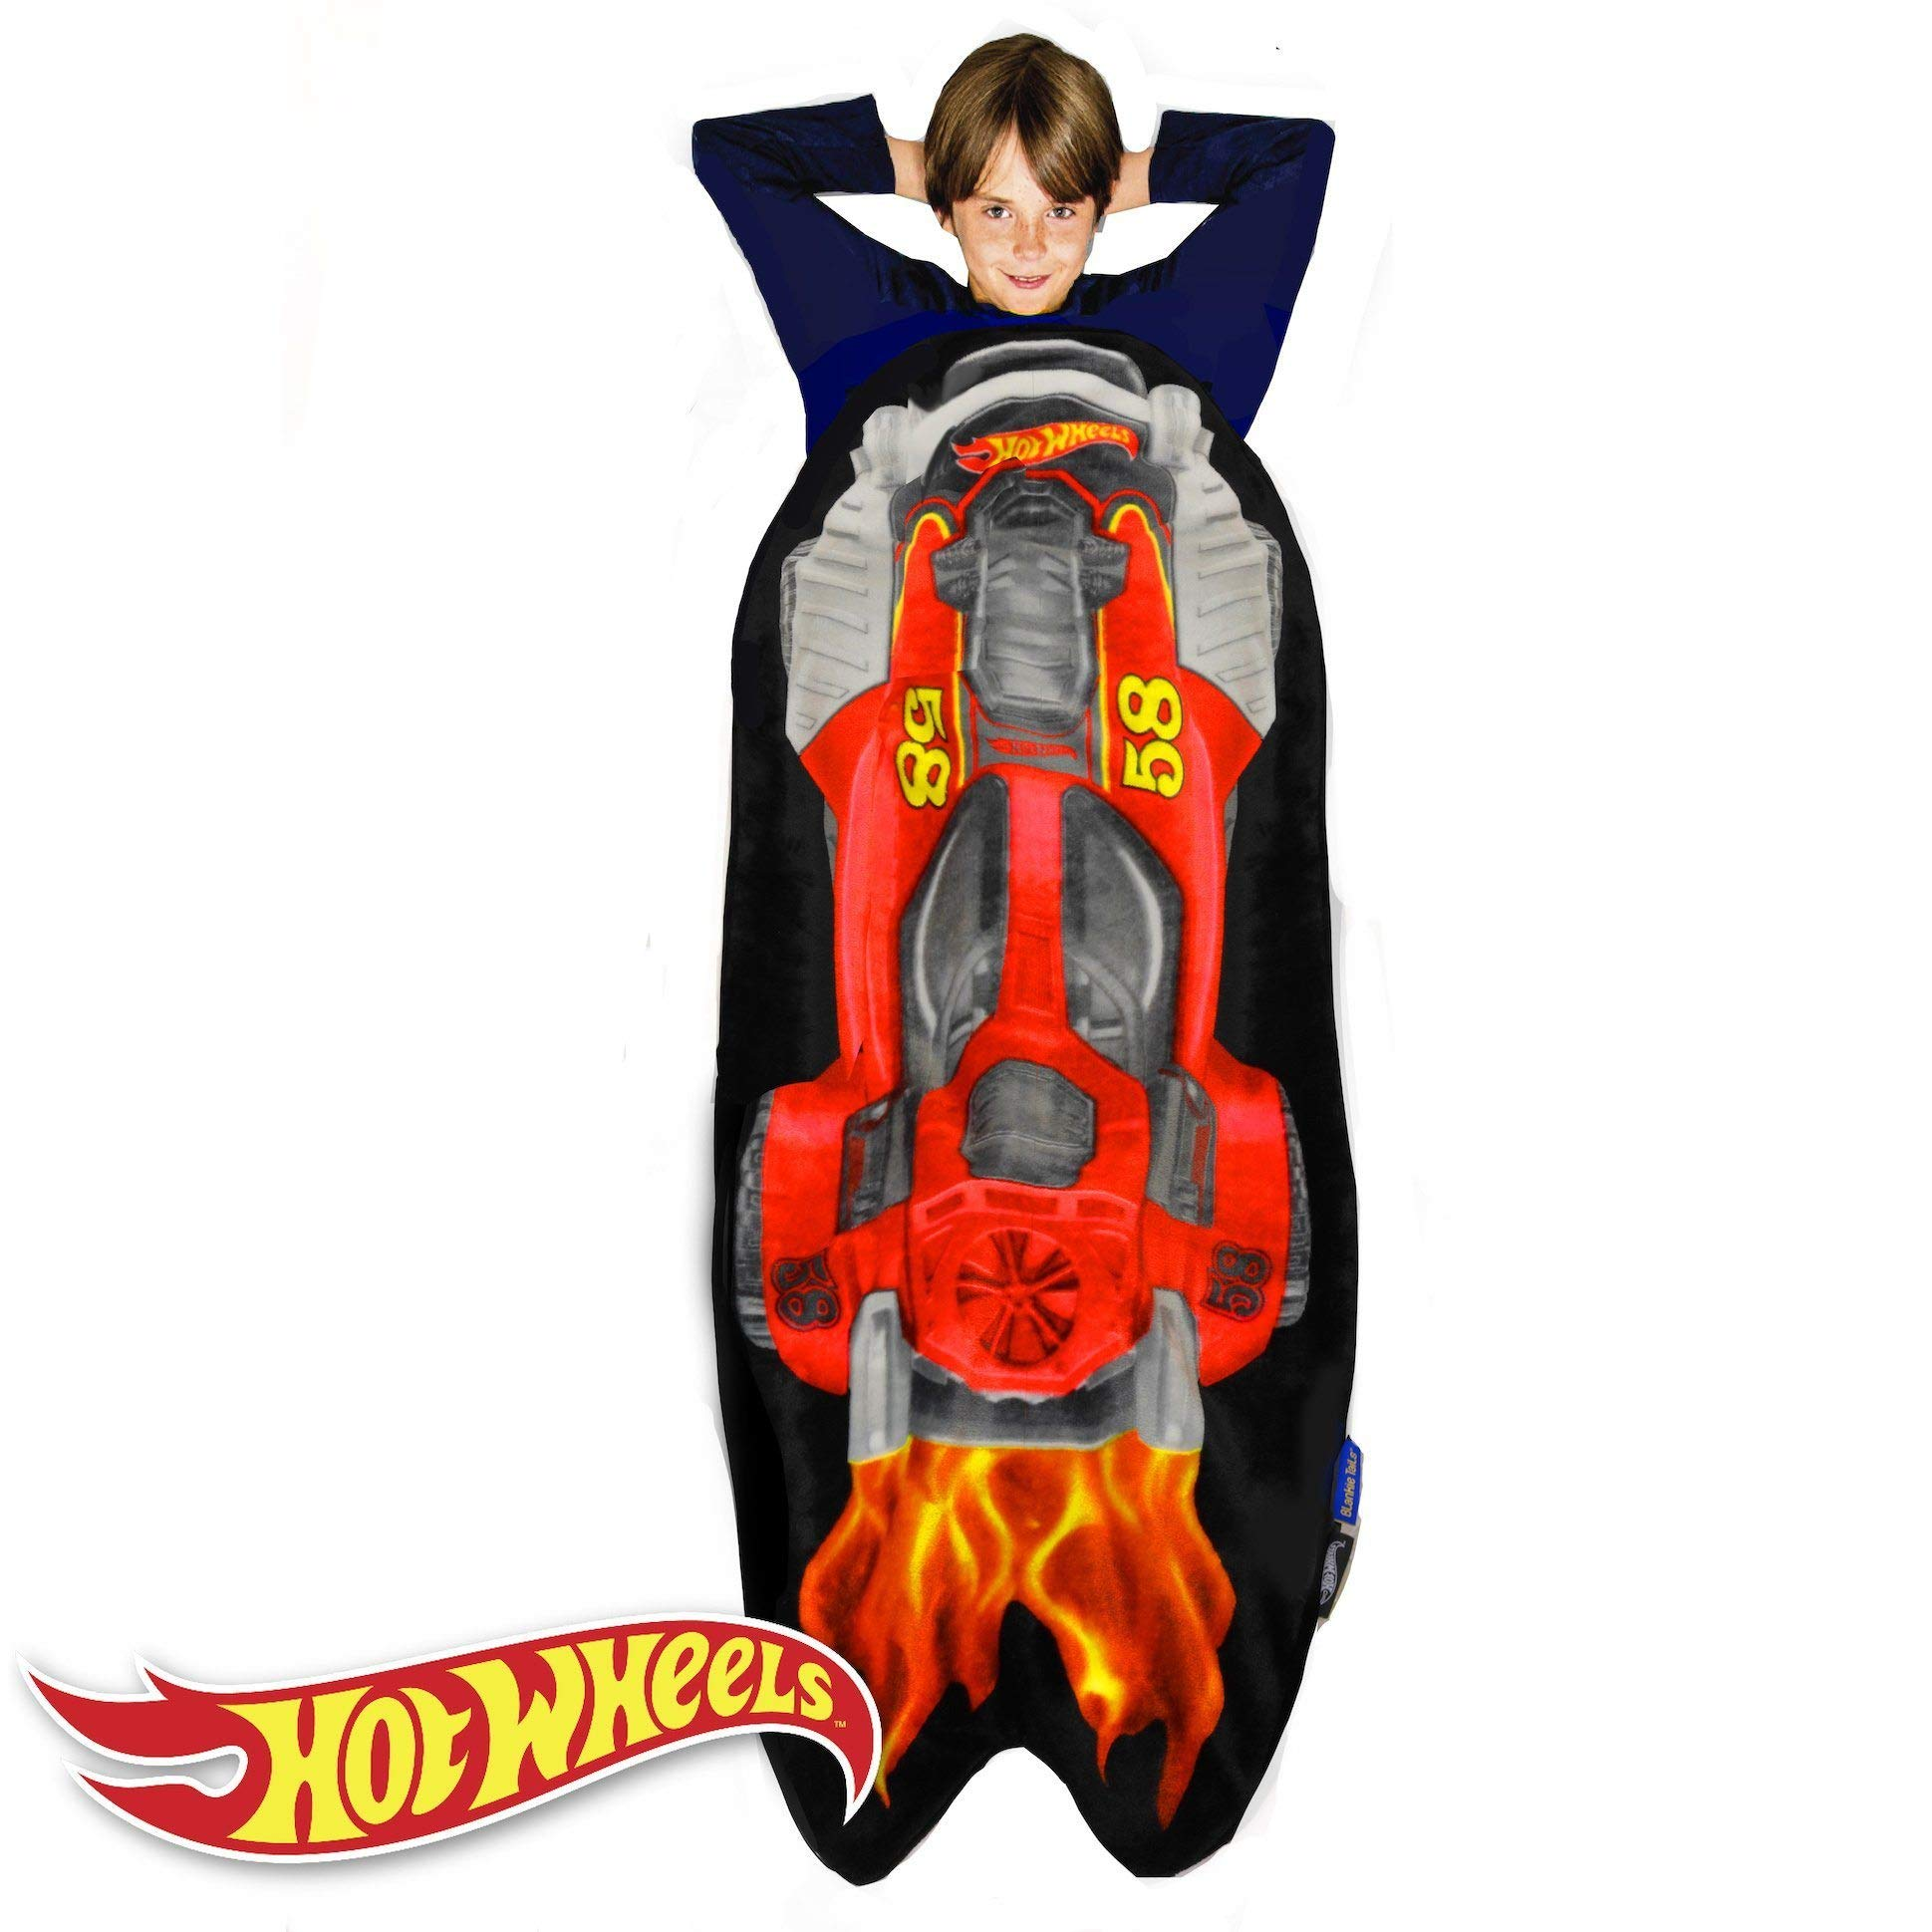 Blankie Tails Hot Wheels Car Shaped Blanket Super Soft-Double Sided Minky Fleece Sized for Kids- Climb Inside This Cozy Wearable Blanket